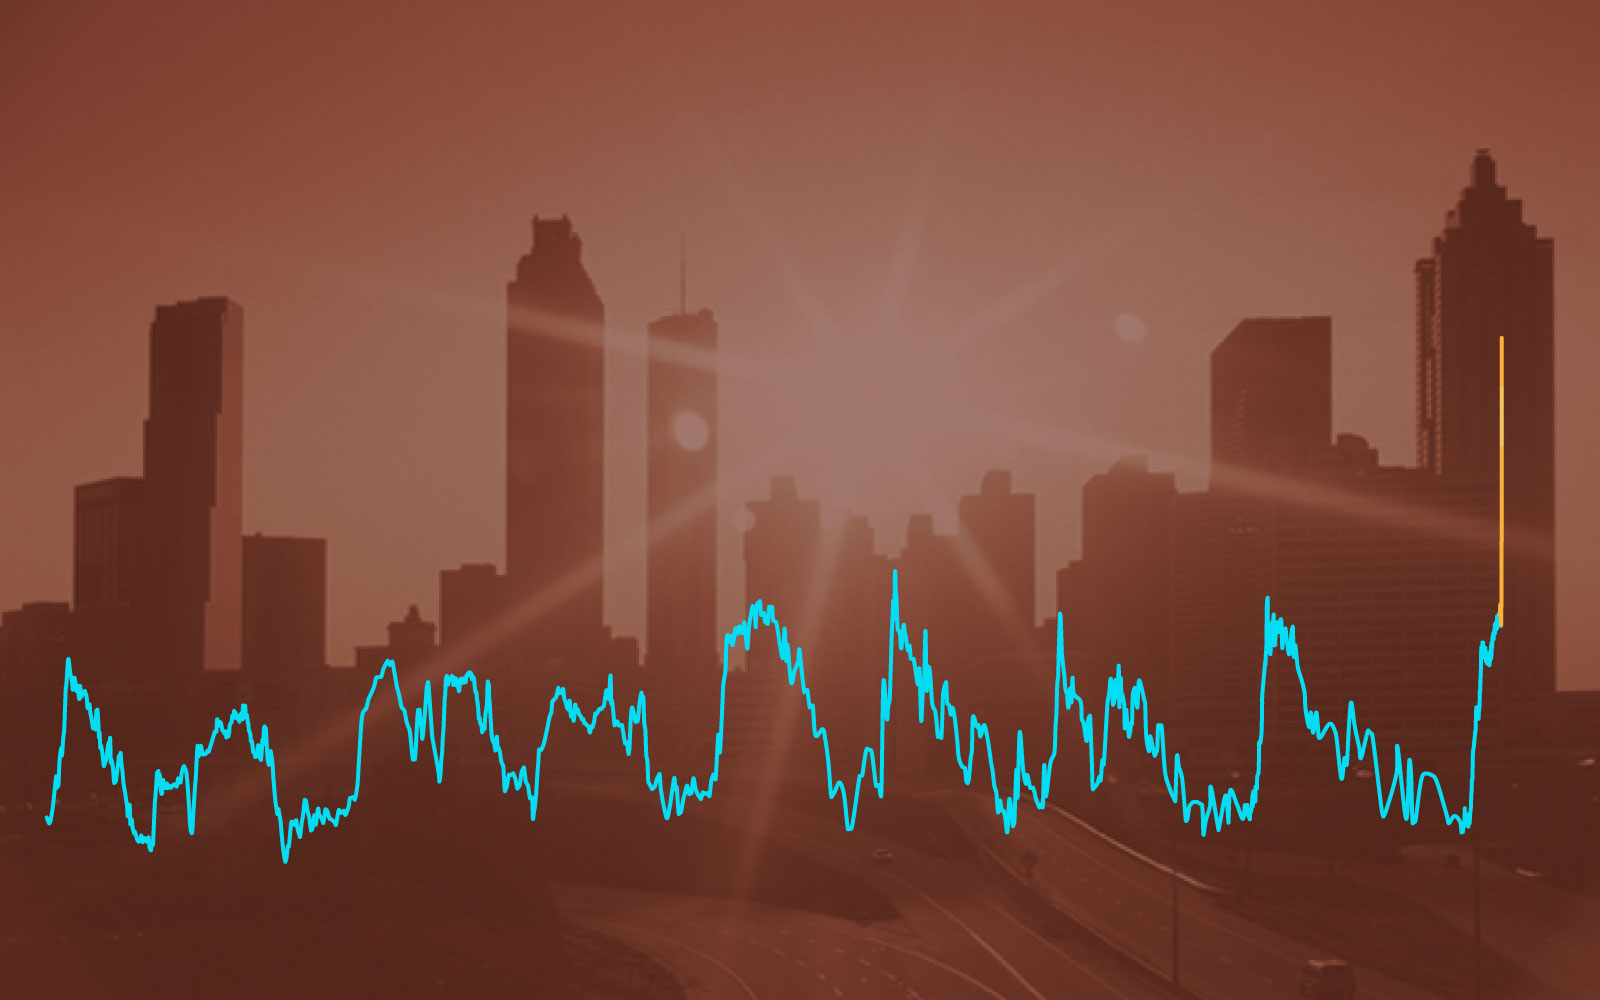 A hazy city skyline with a line chart superimposed on top.